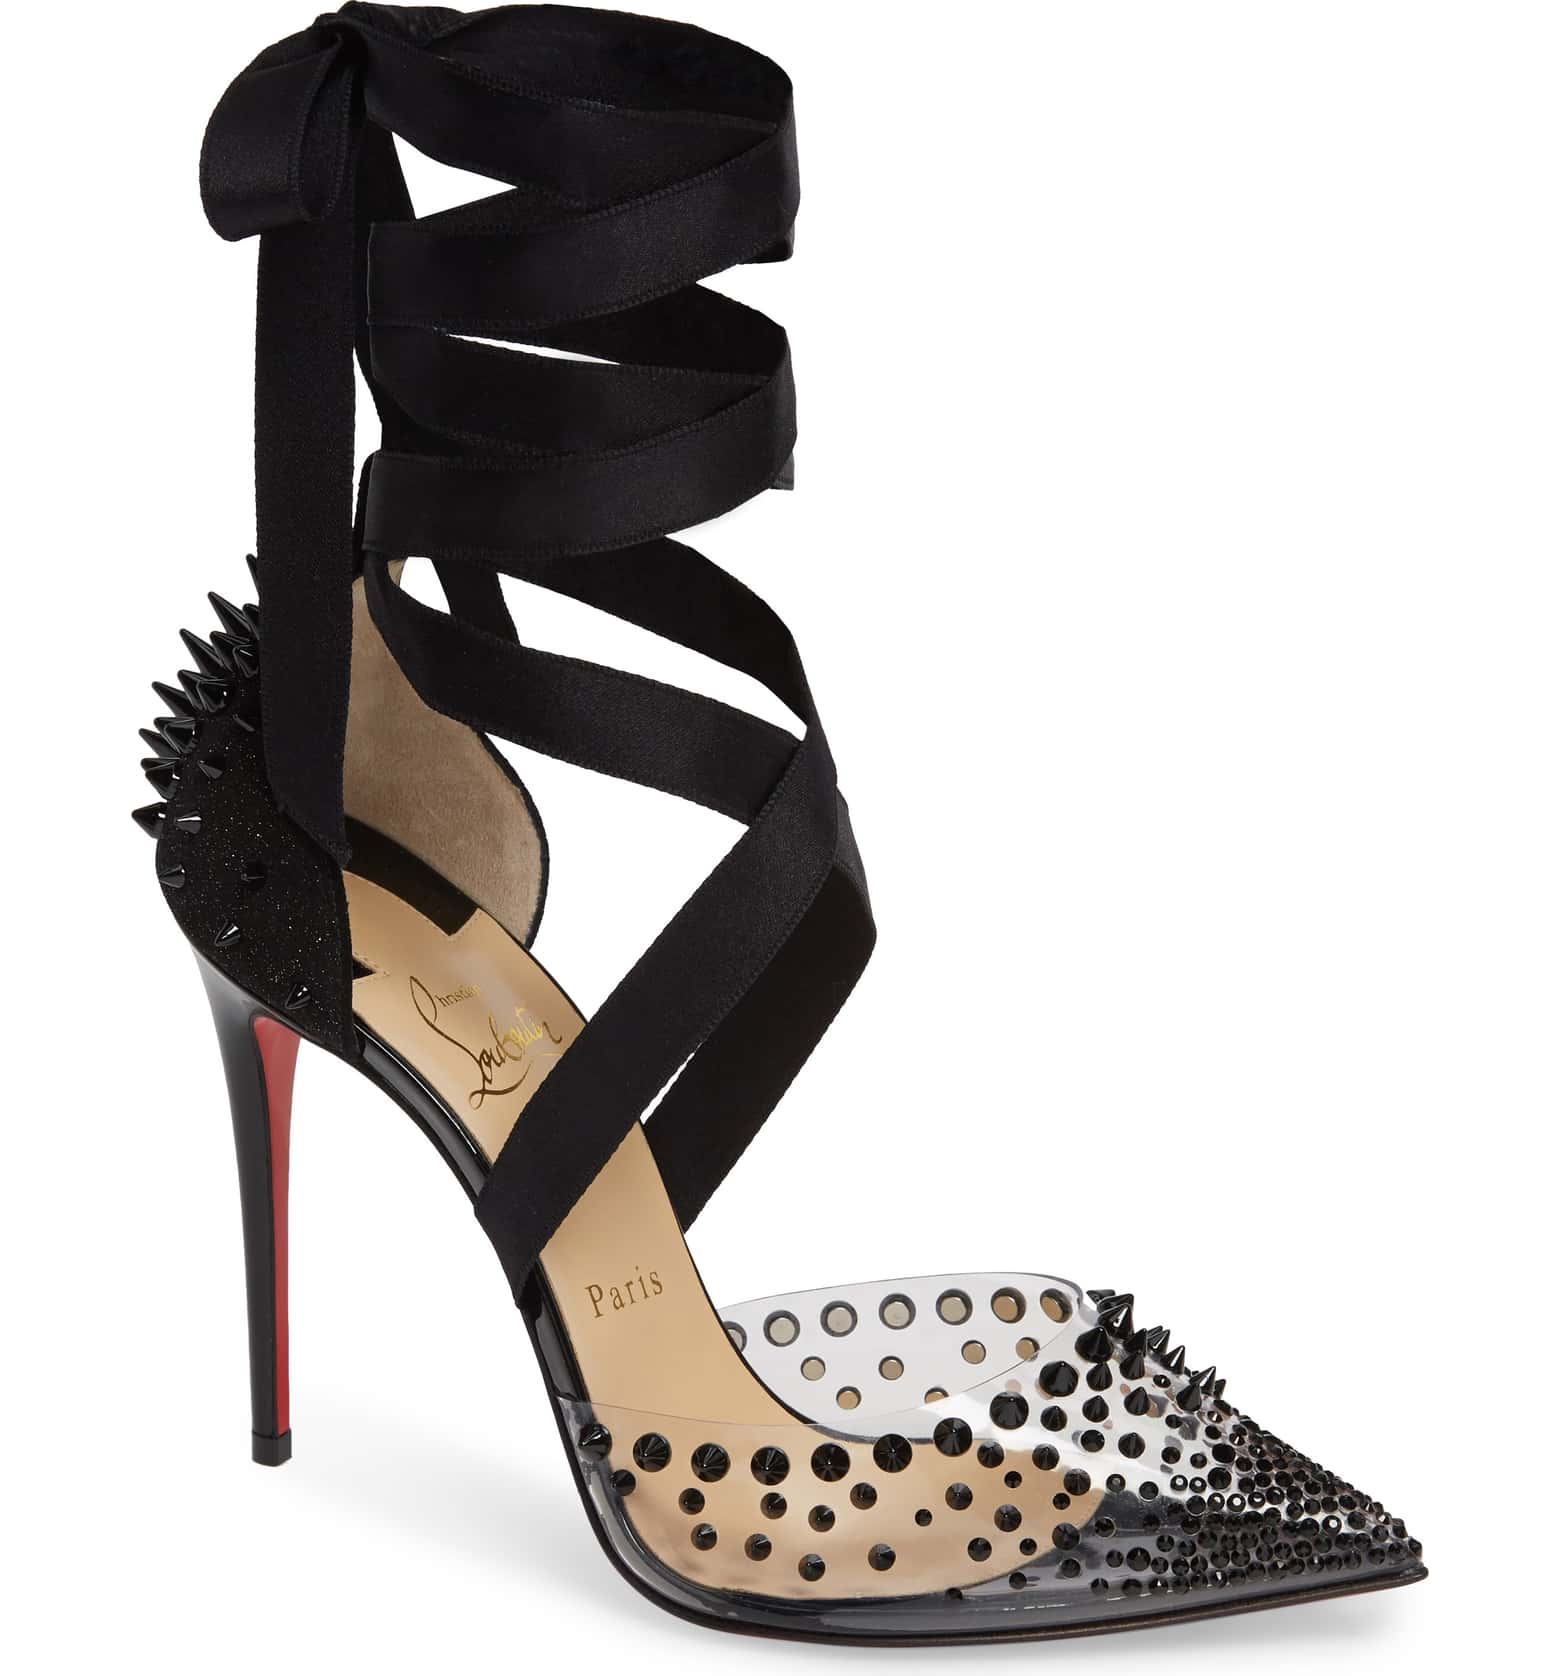 spikey loubs.jpg